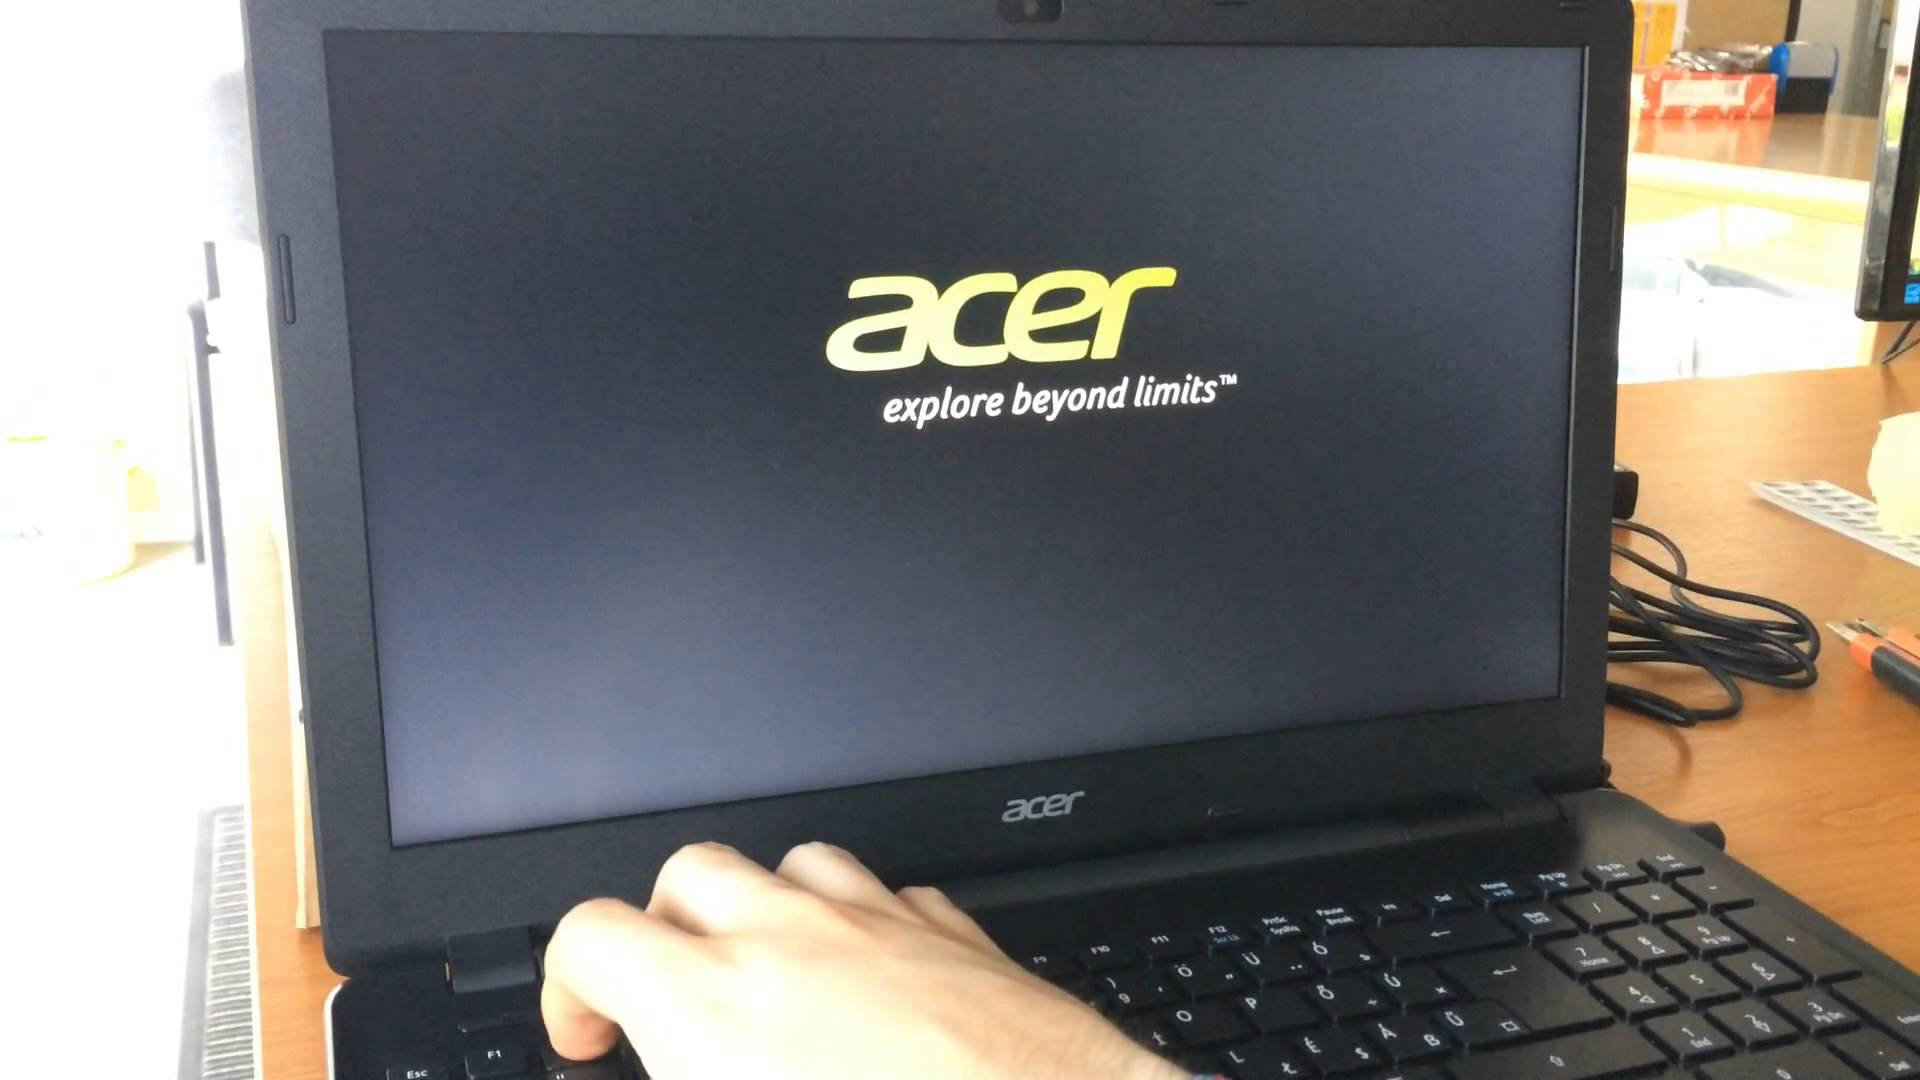 Acer E5-571: I cannot access to F2 boot menu — Acer Community